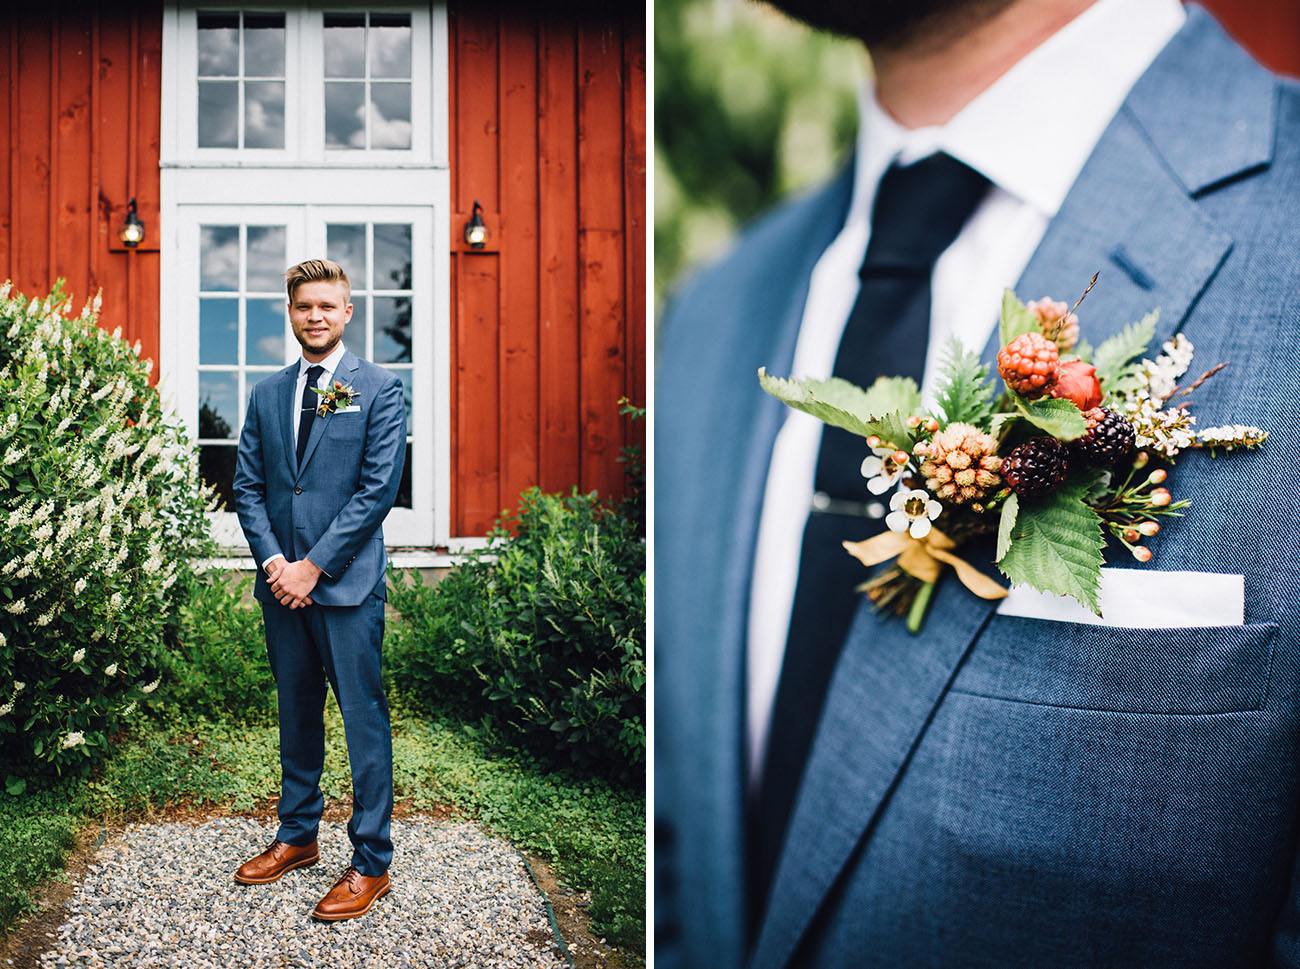 Rustic-Romantic Vermont Farm Wedding: Rawan + Adrian - Green Wedding ...